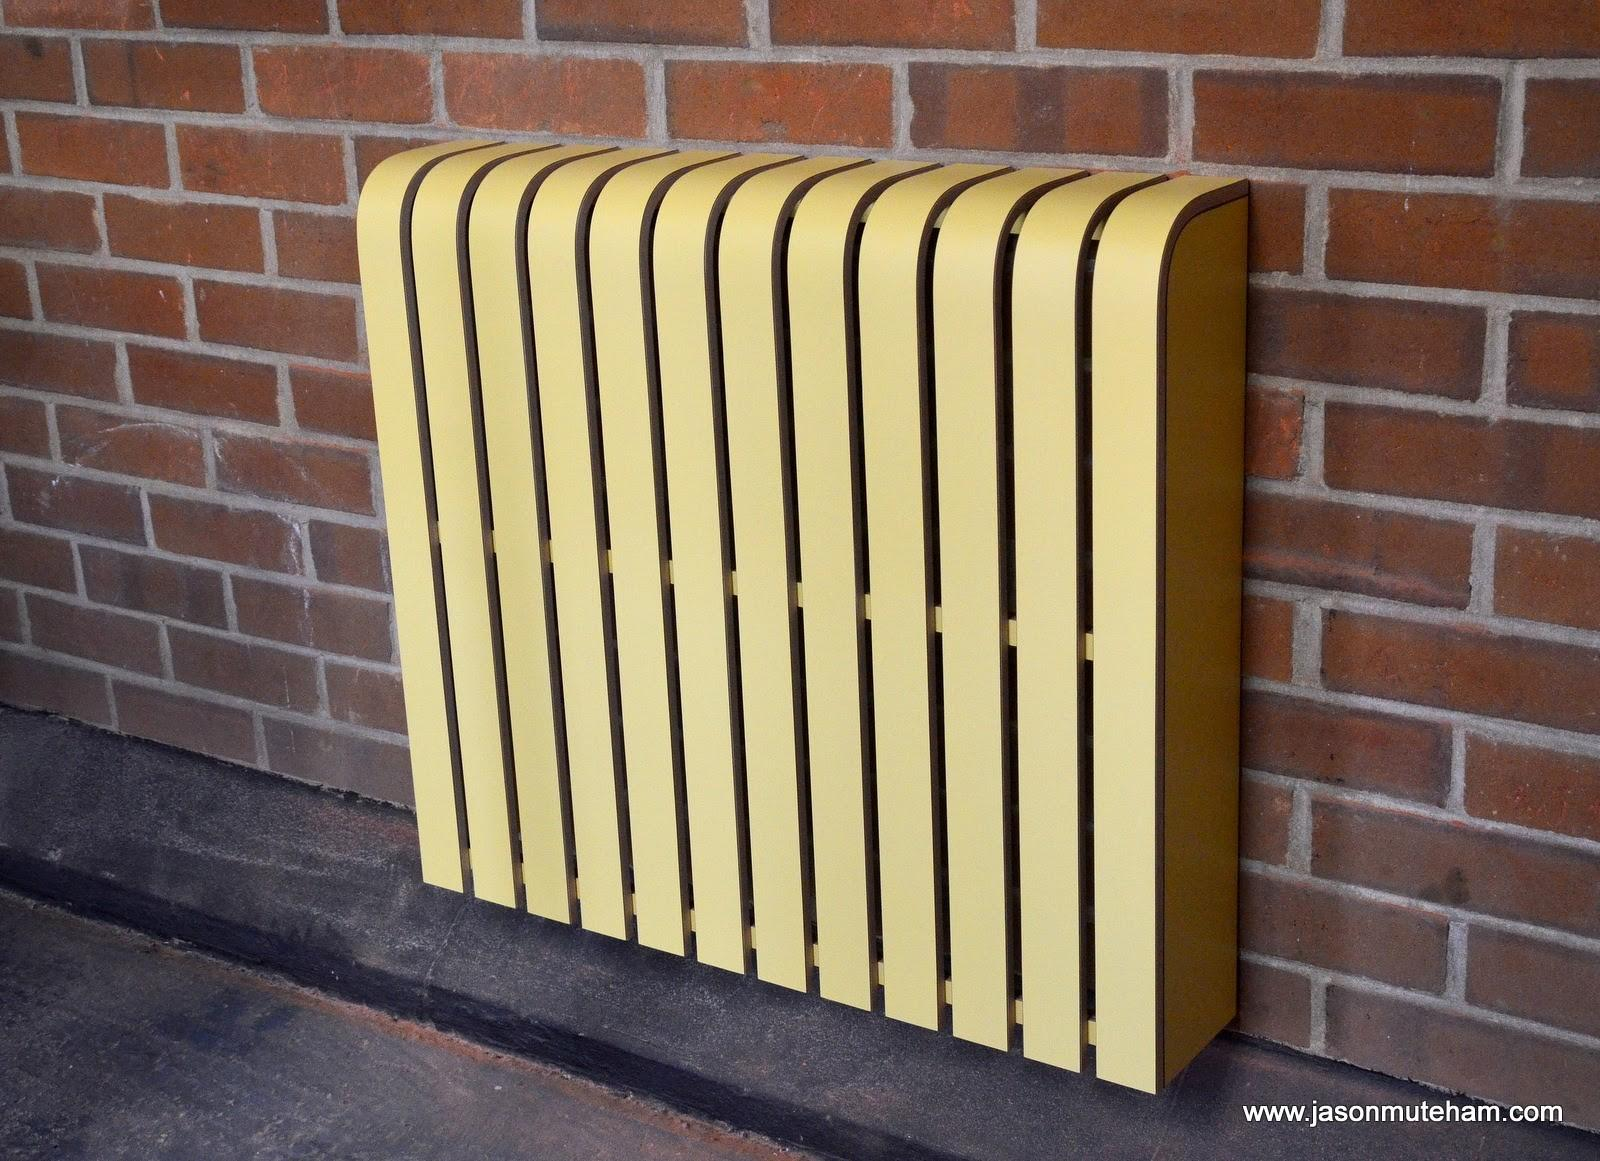 Jason Muteham Furniture Designer Maker New Radiator